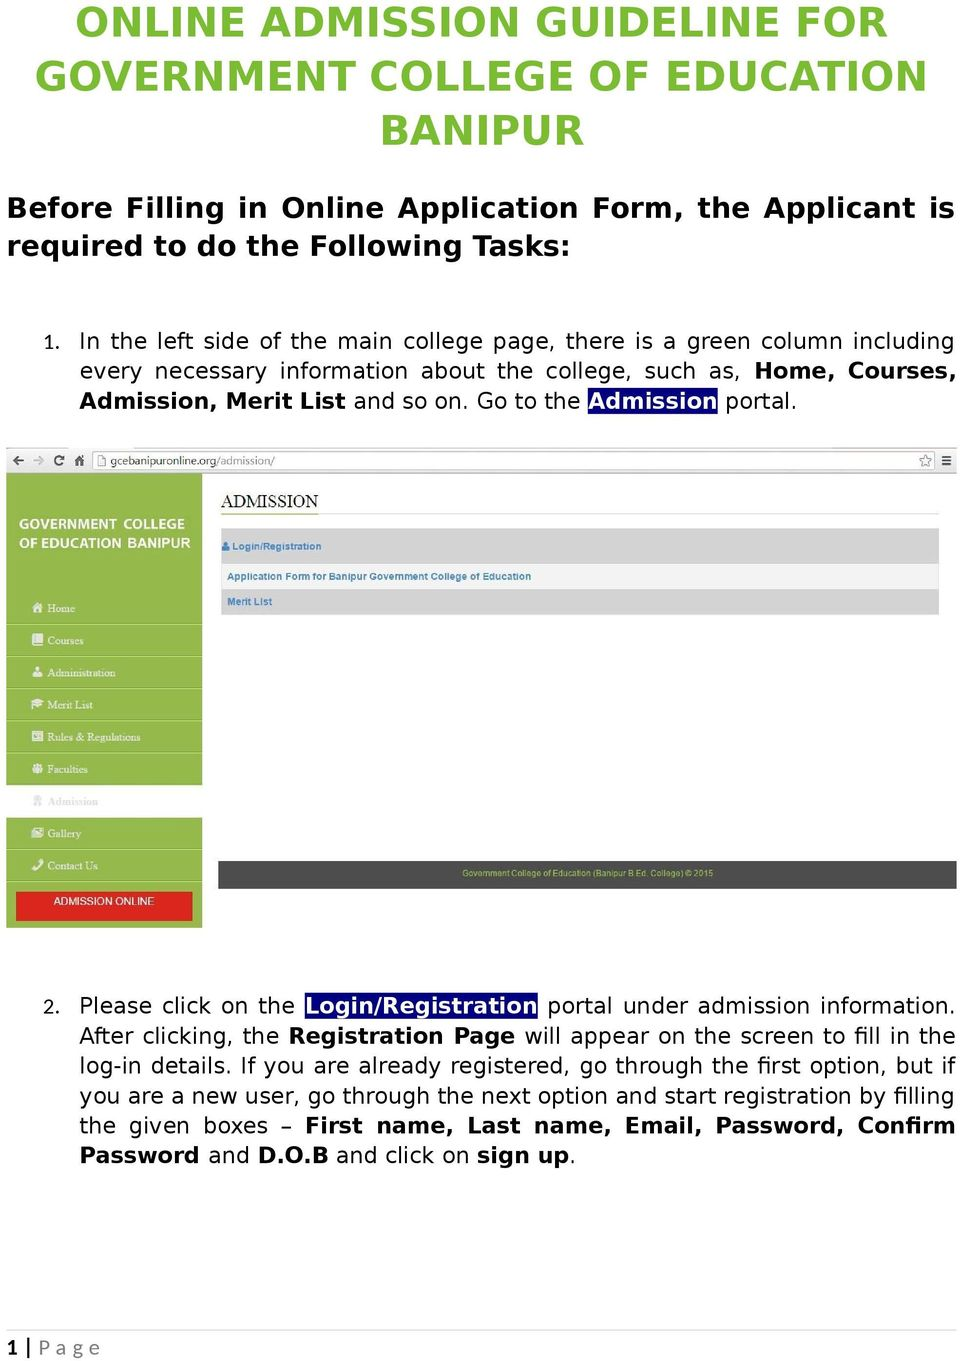 ONLINE ADMISSION GUIDELINE FOR GOVERNMENT COLLEGE OF